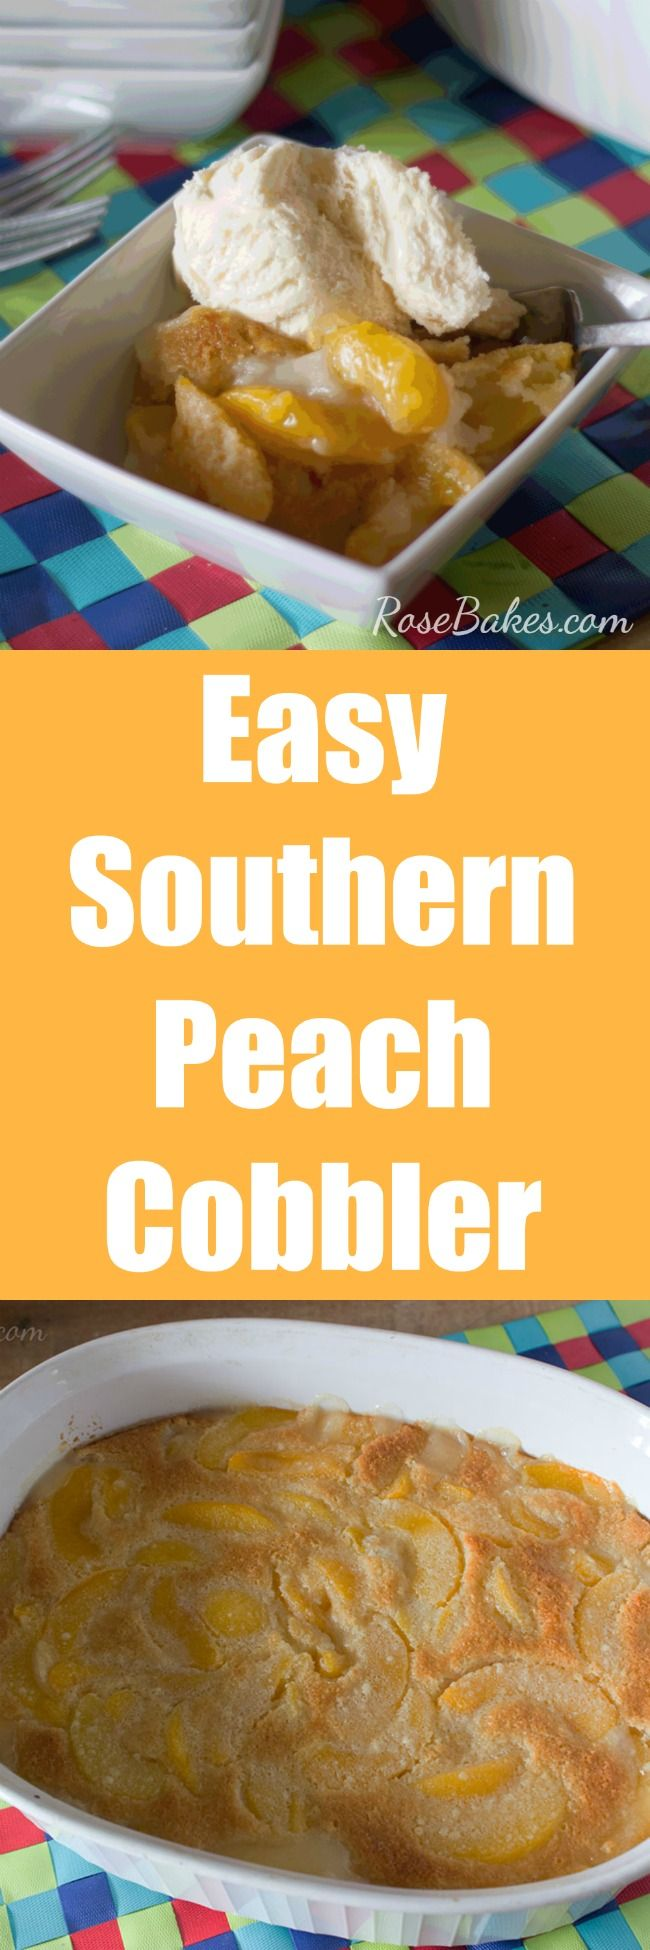 Southern peach cobbler, Peach cobblers and Cobbler on Pinterest